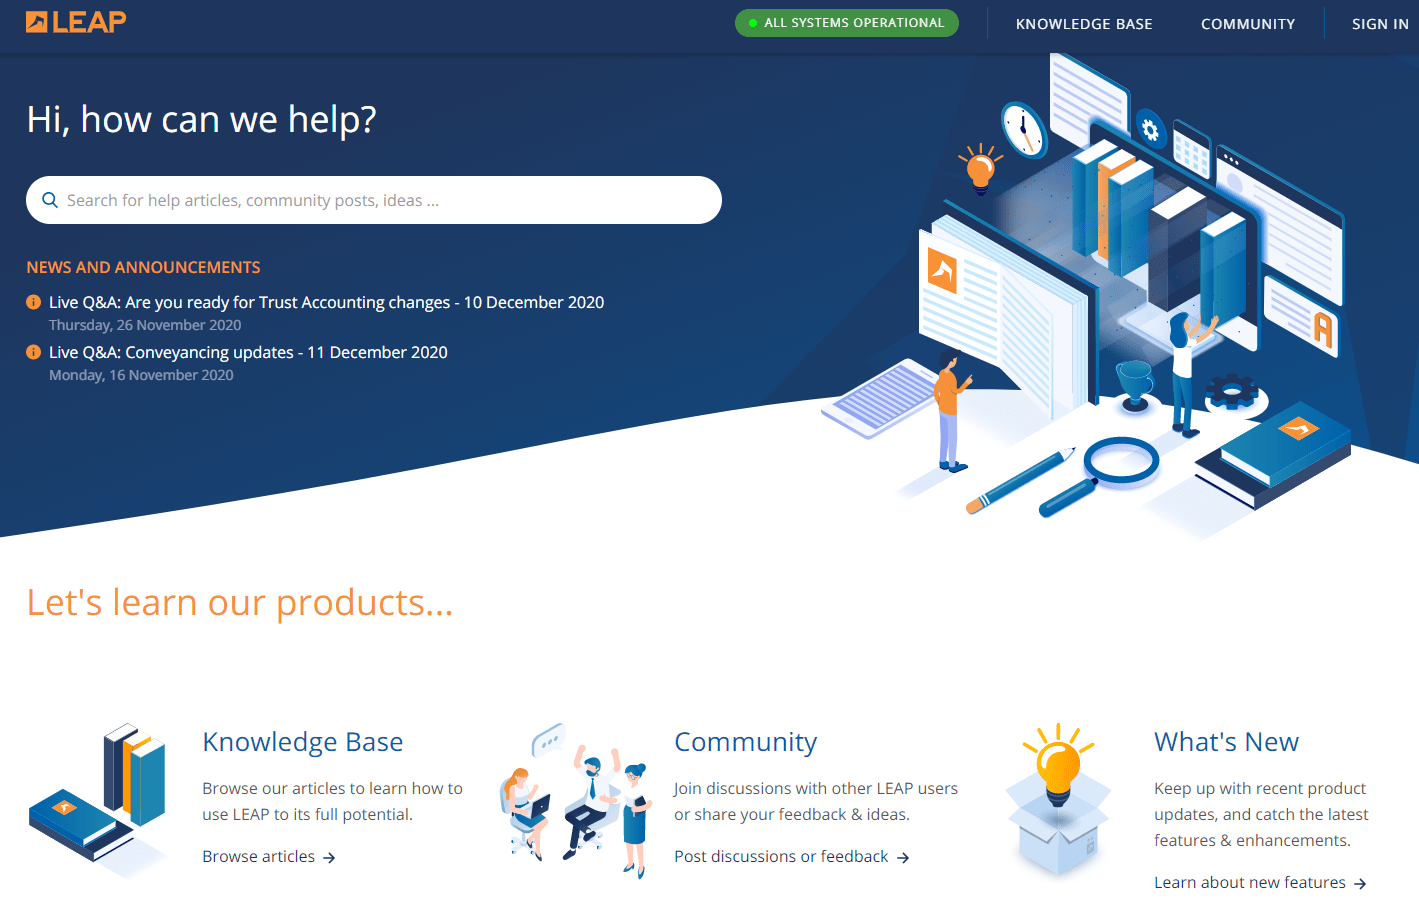 Leap Knowledge Base Design